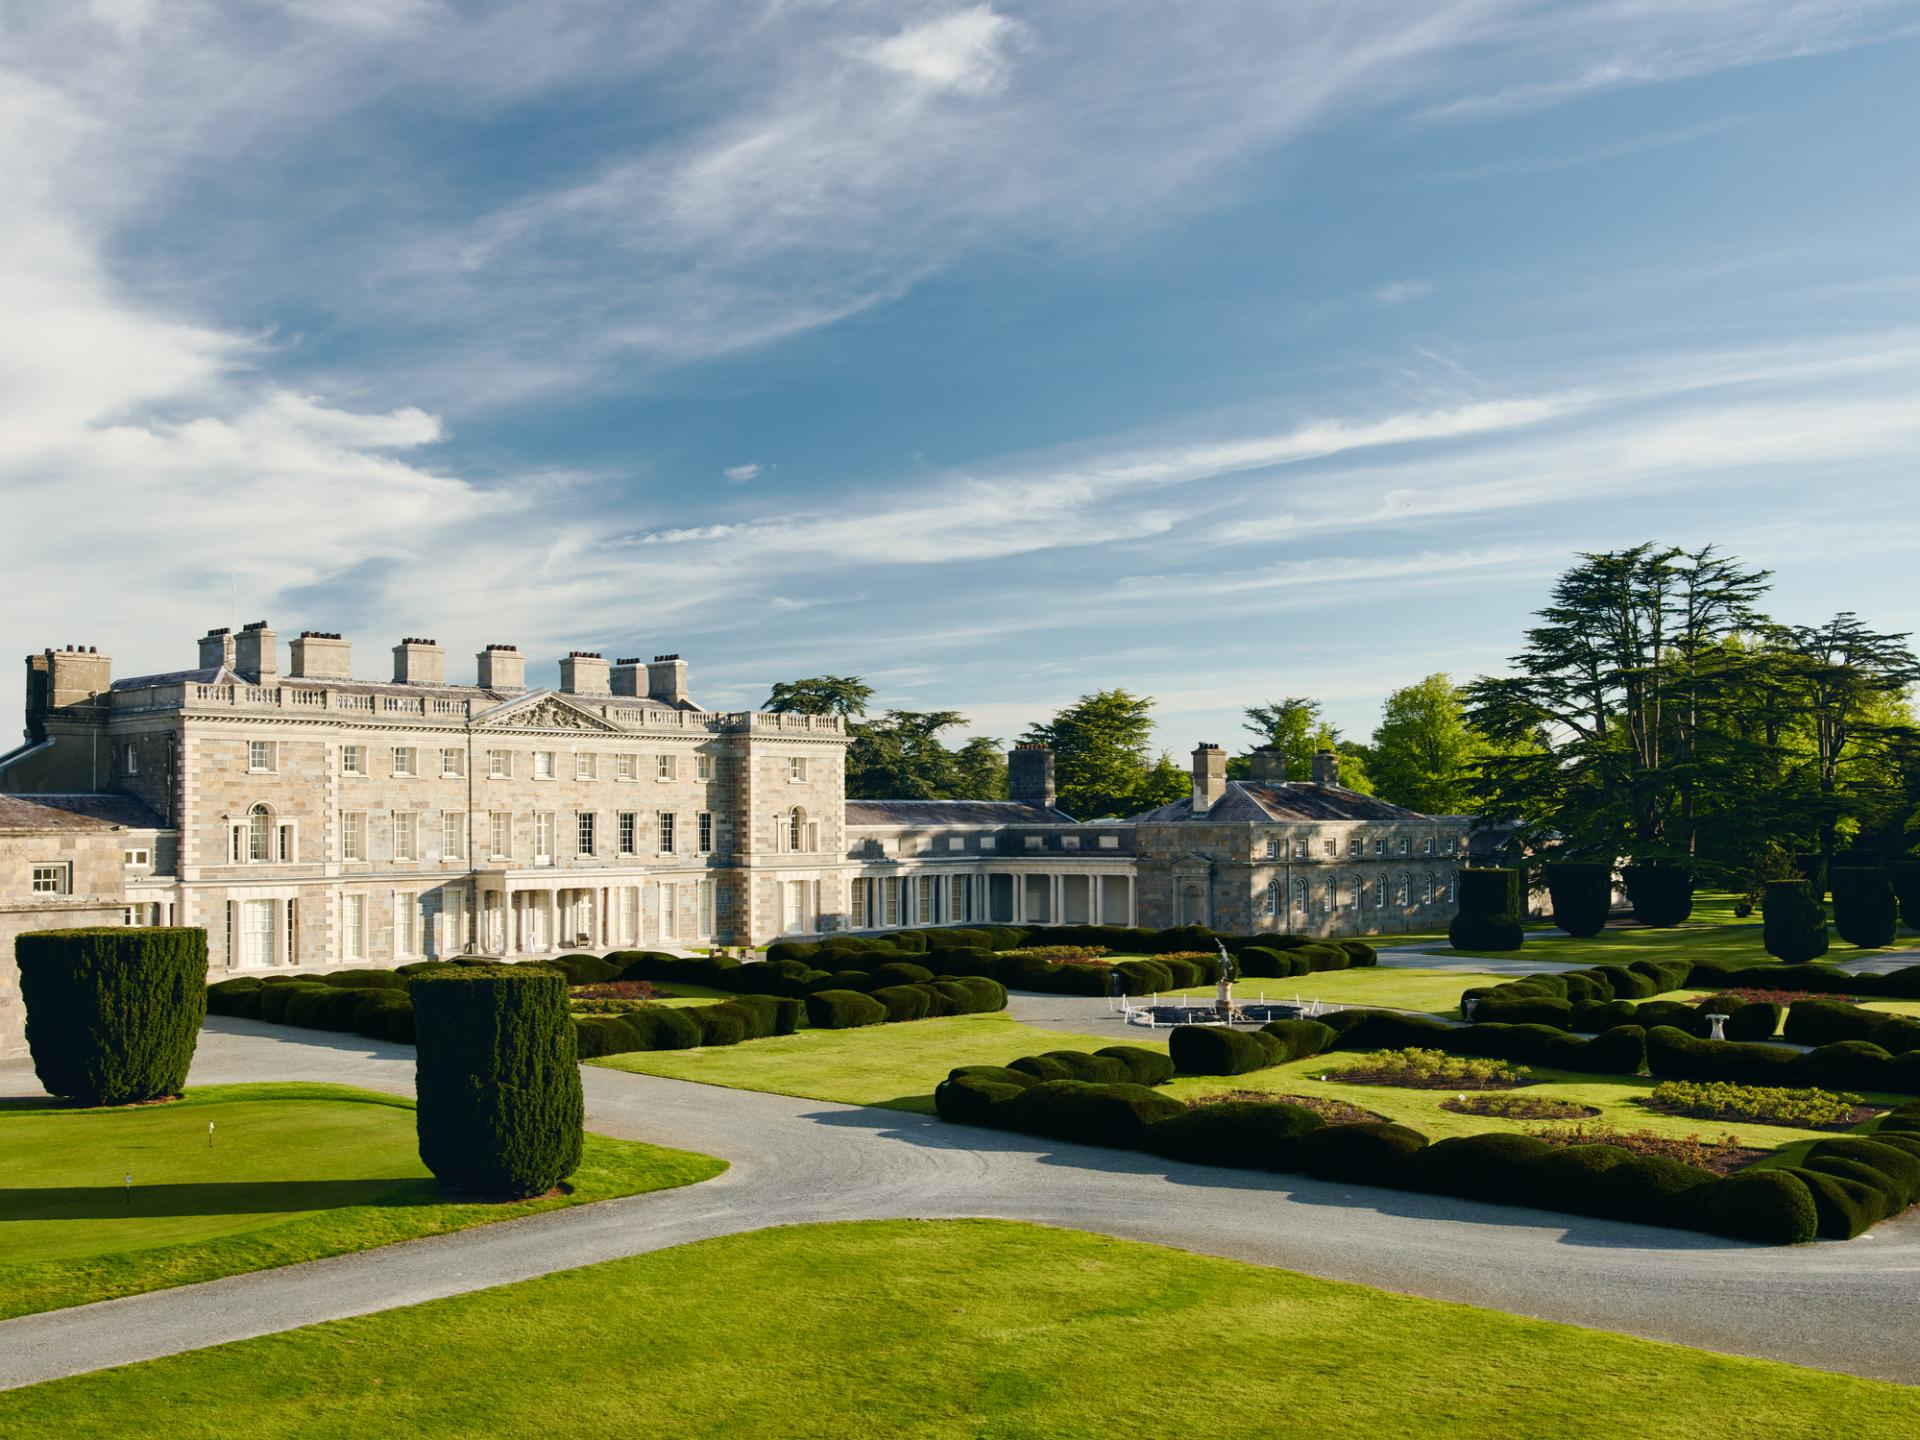 Carton House, a Fairmont Managed Hotel reopens this summer after an extensive 2 year, multi-million euro refurbishment